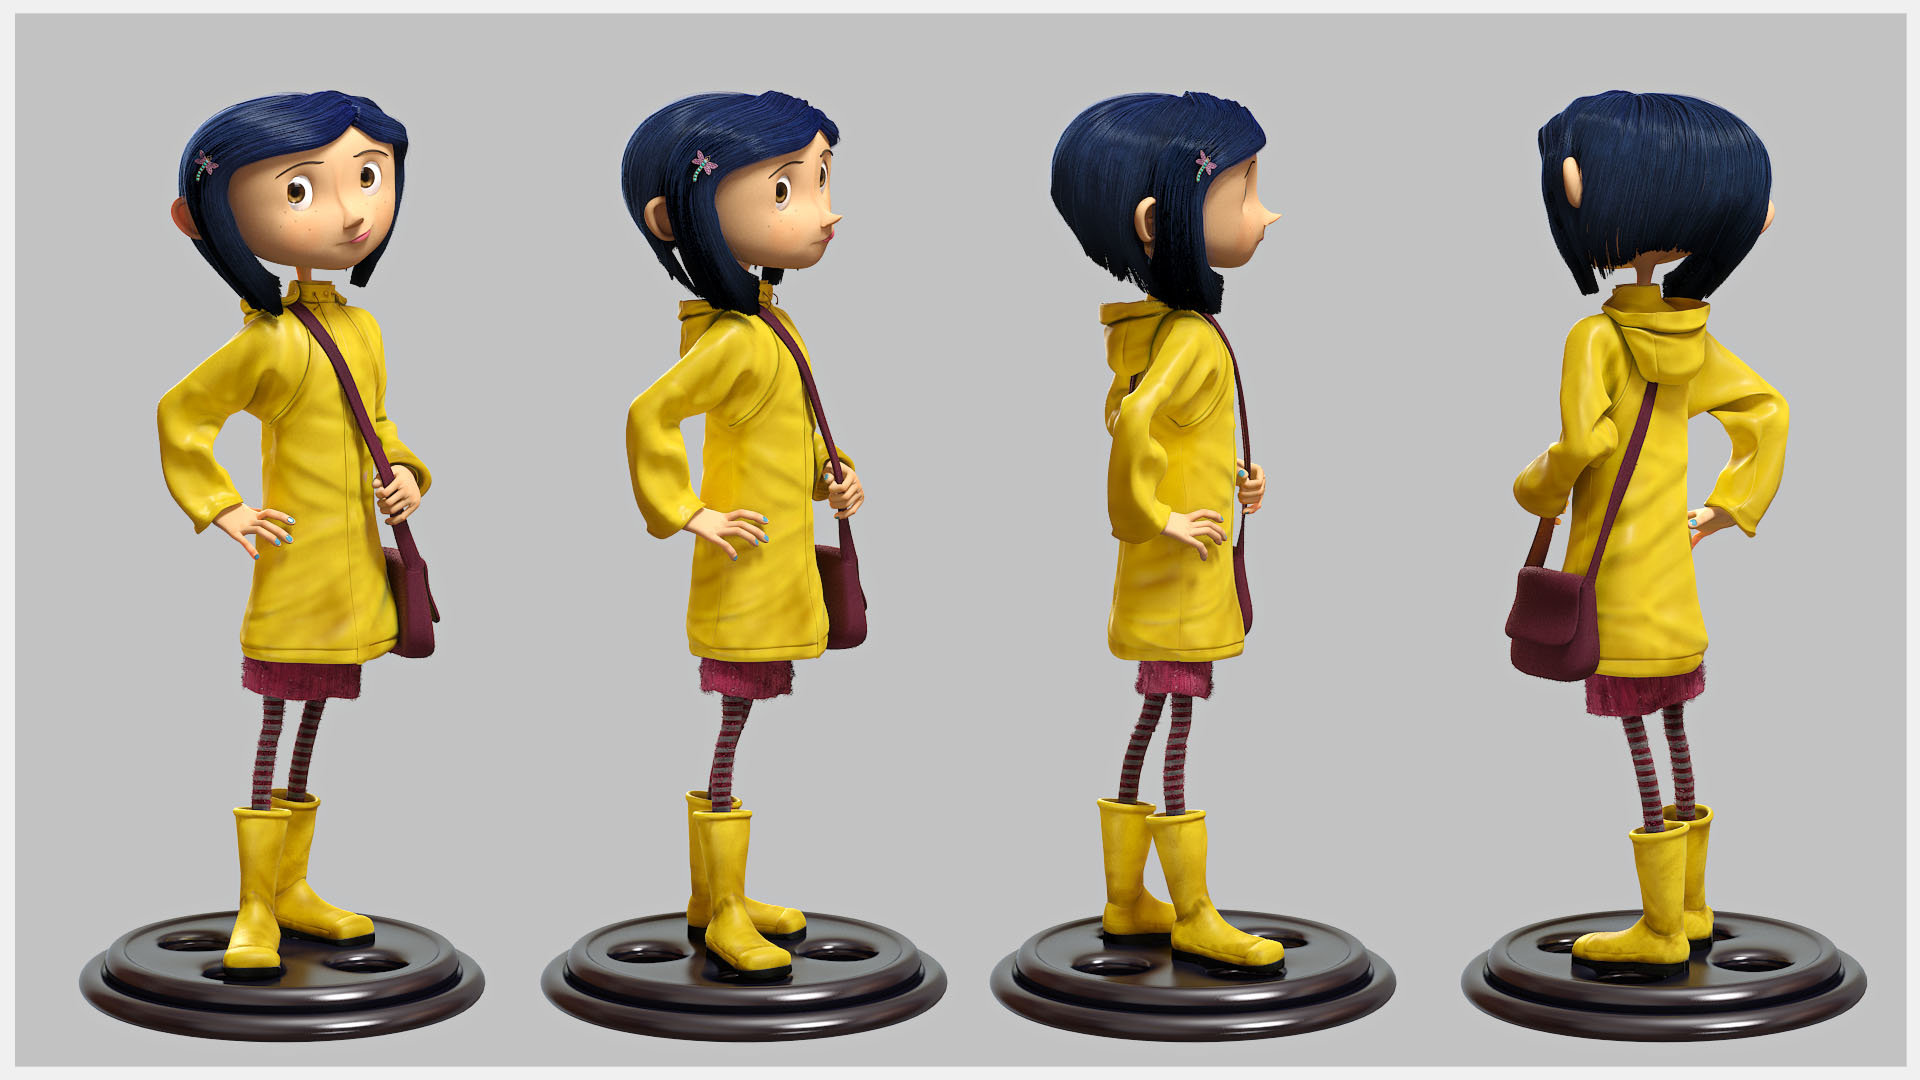 coraline essay Coraline is a horrific children's book that was produced into a movie in 2009 written by neil gaiman, the book was published in 2003 as juvenile fiction.